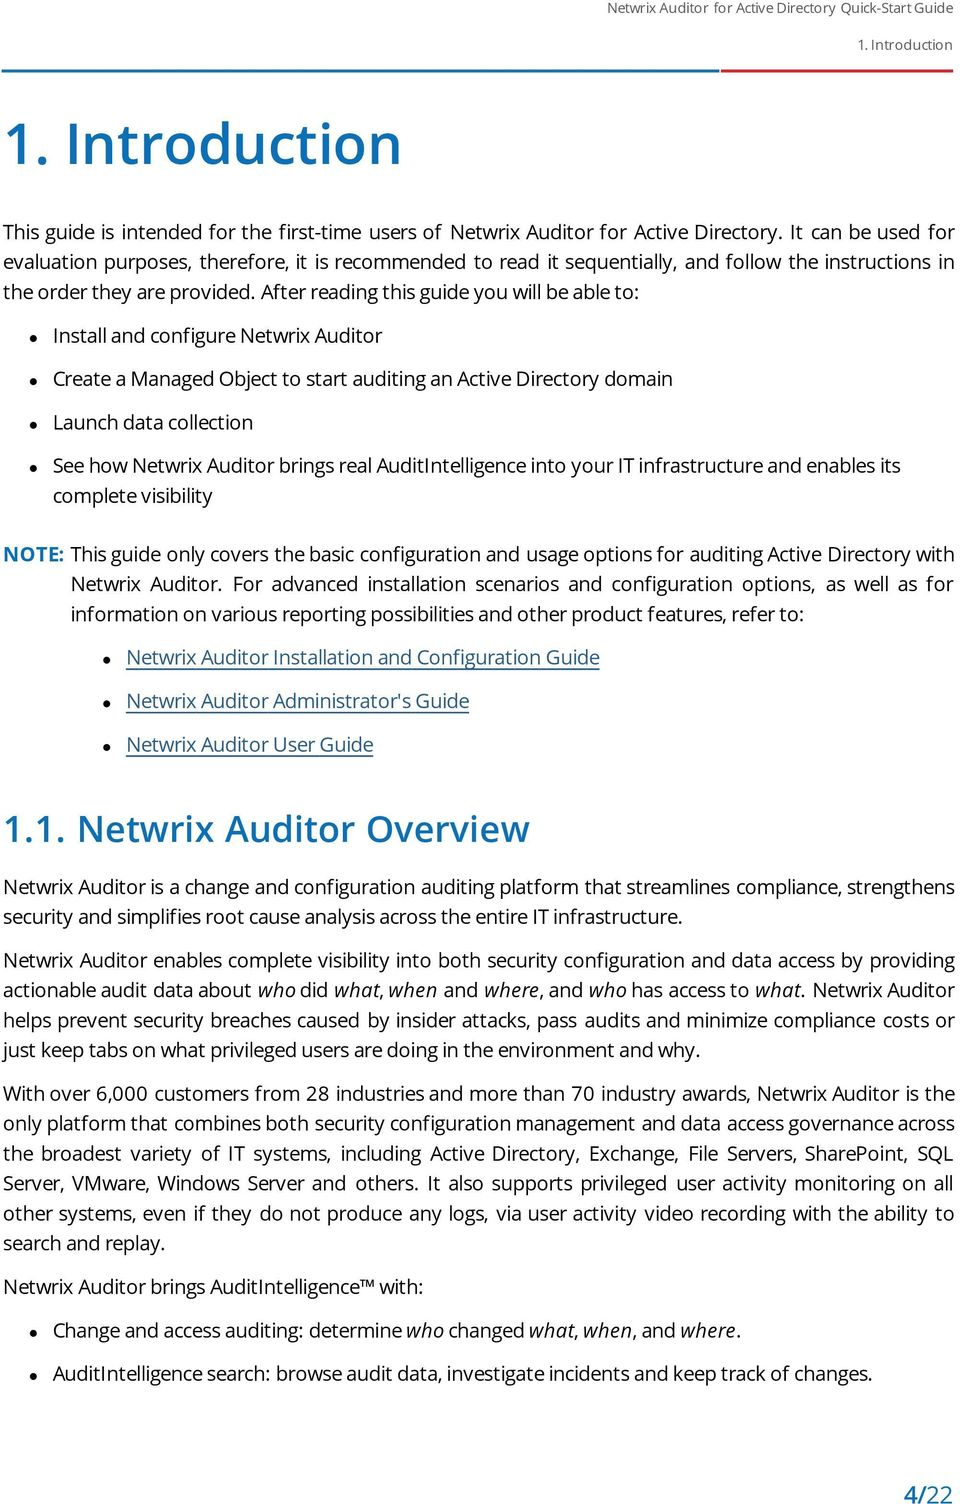 After reading this guide you will be able to: Install and configure Netwrix Auditor Create a Managed Object to start auditing an Active Directory domain Launch data collection See how Netwrix Auditor